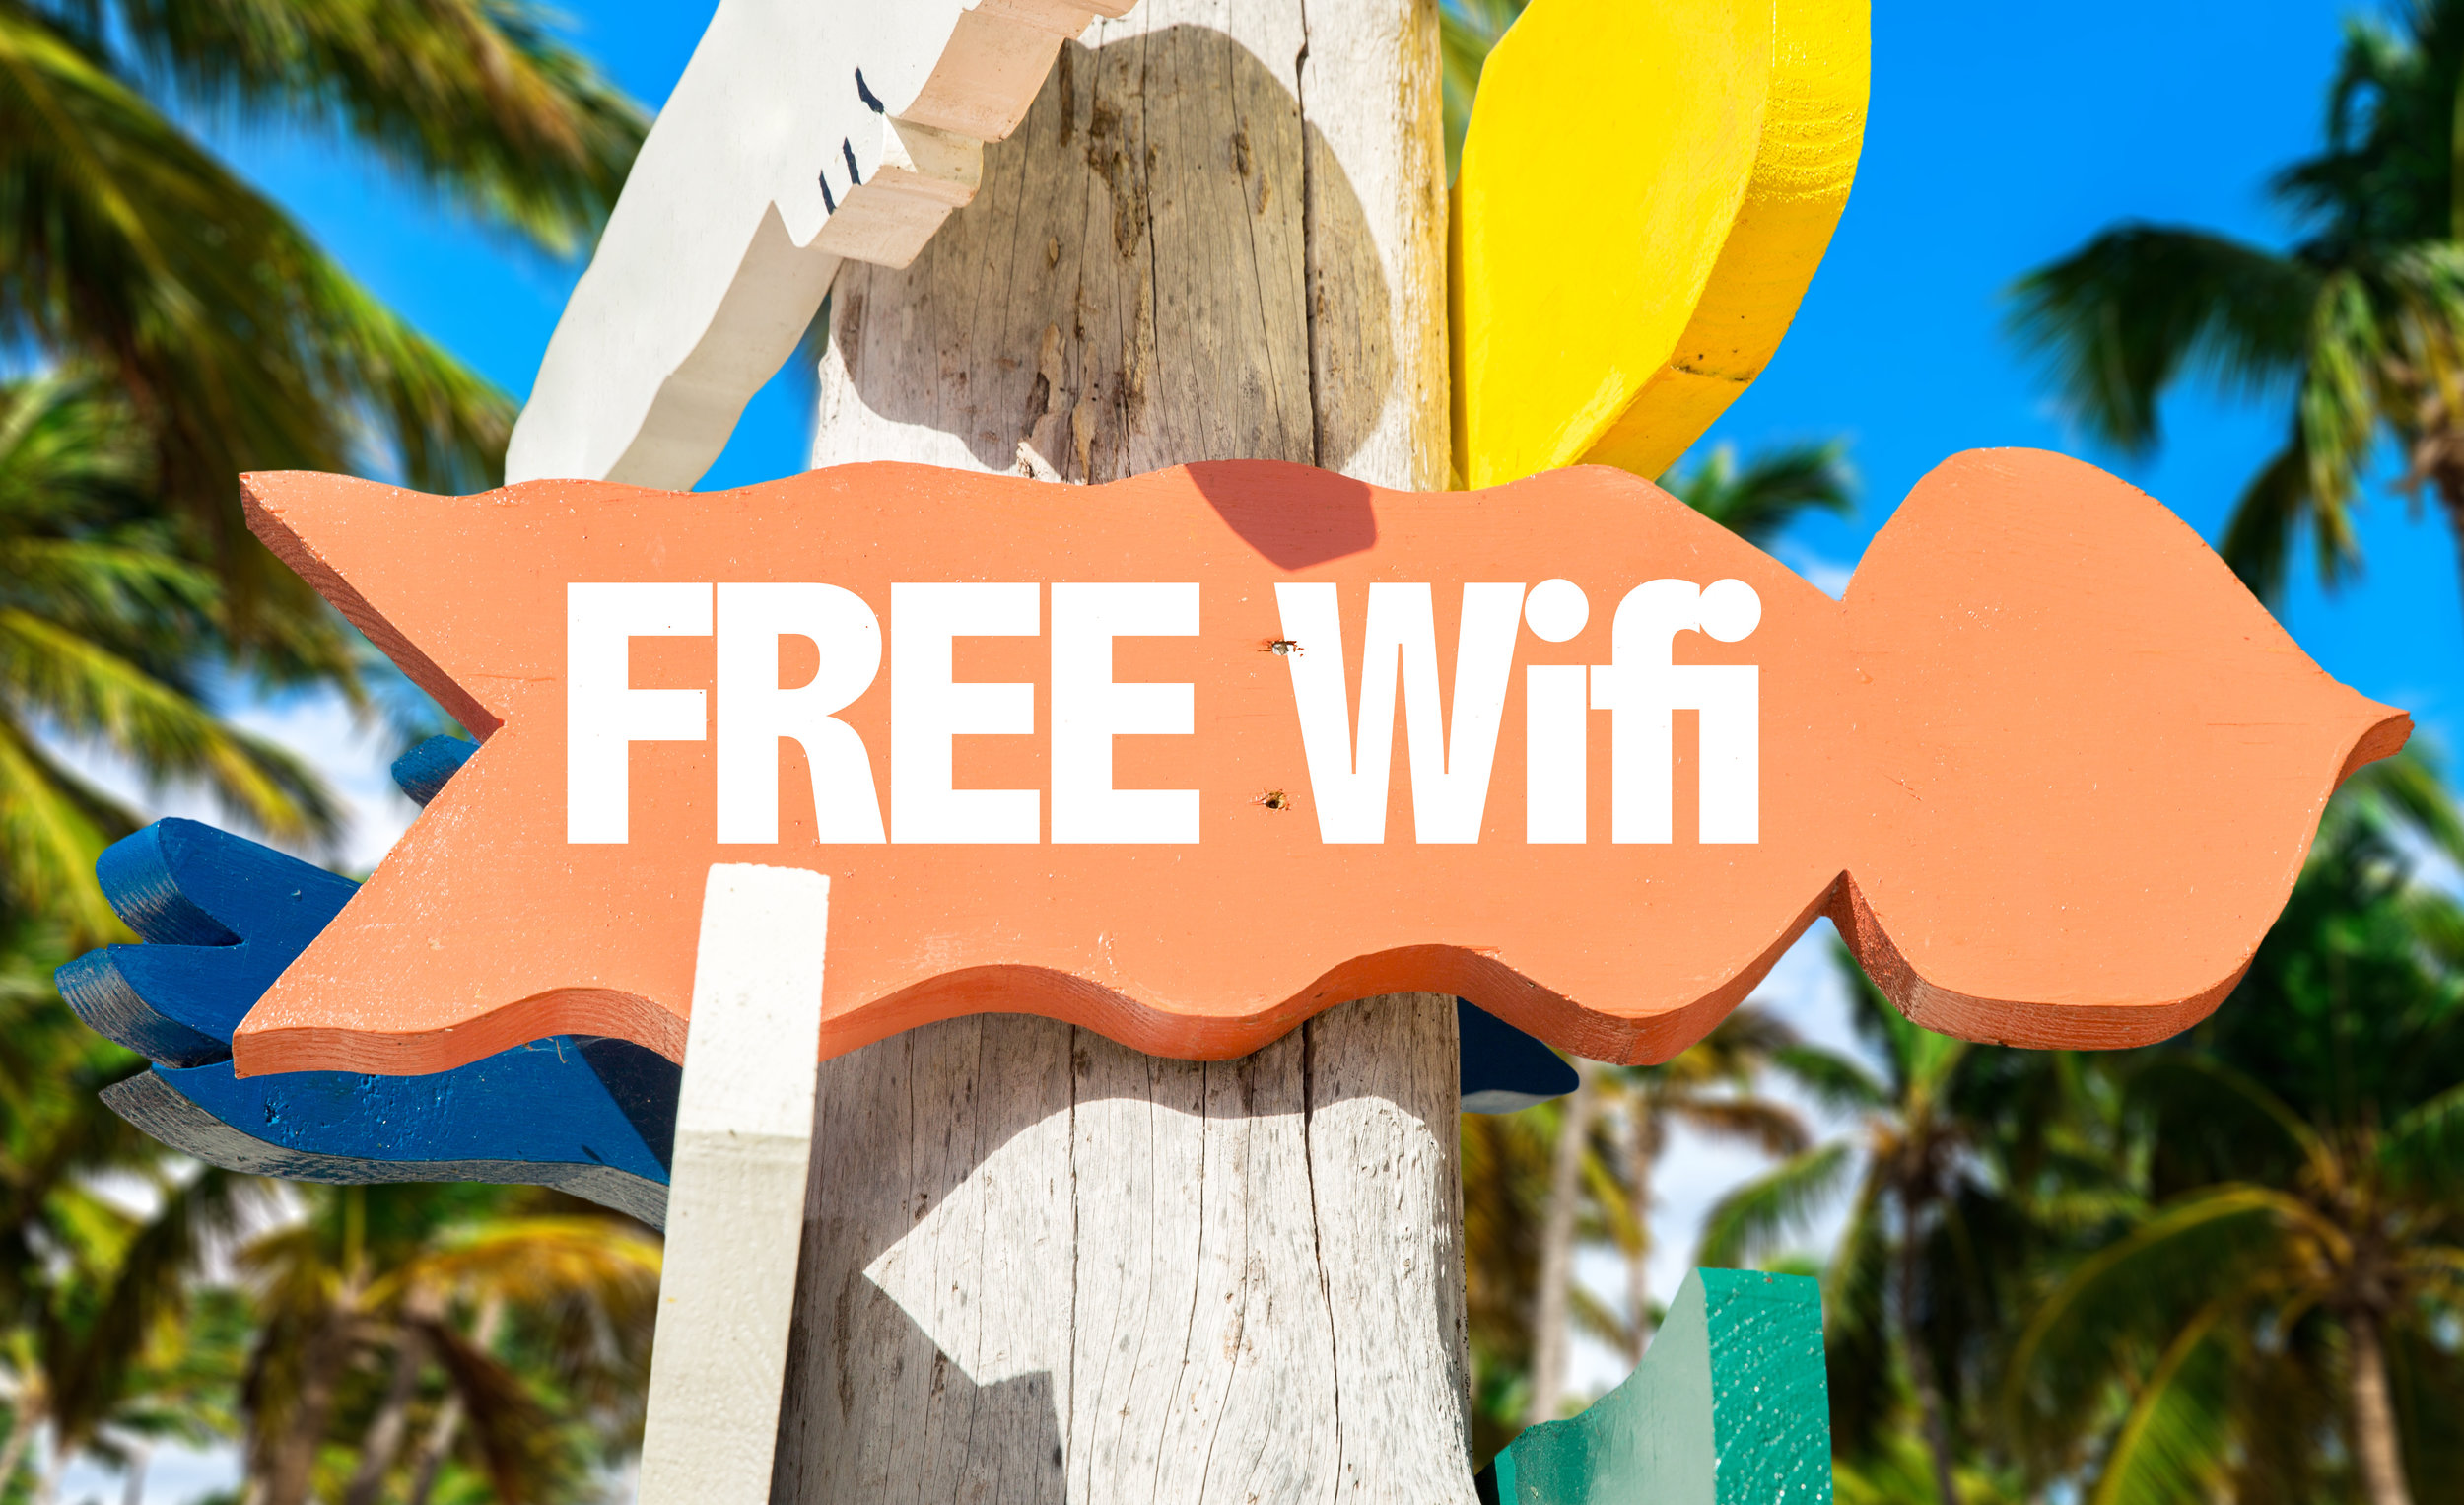 10.WiFi for free everywhere for everyone? WHAT??? - The rockin'country of Niue (the country with the flashy currency) is also the first nation to offer free Wi-Fi everywhere in the country!I think I am going to need to visit Niue to verify all of this information in person...sounds too good to be true!